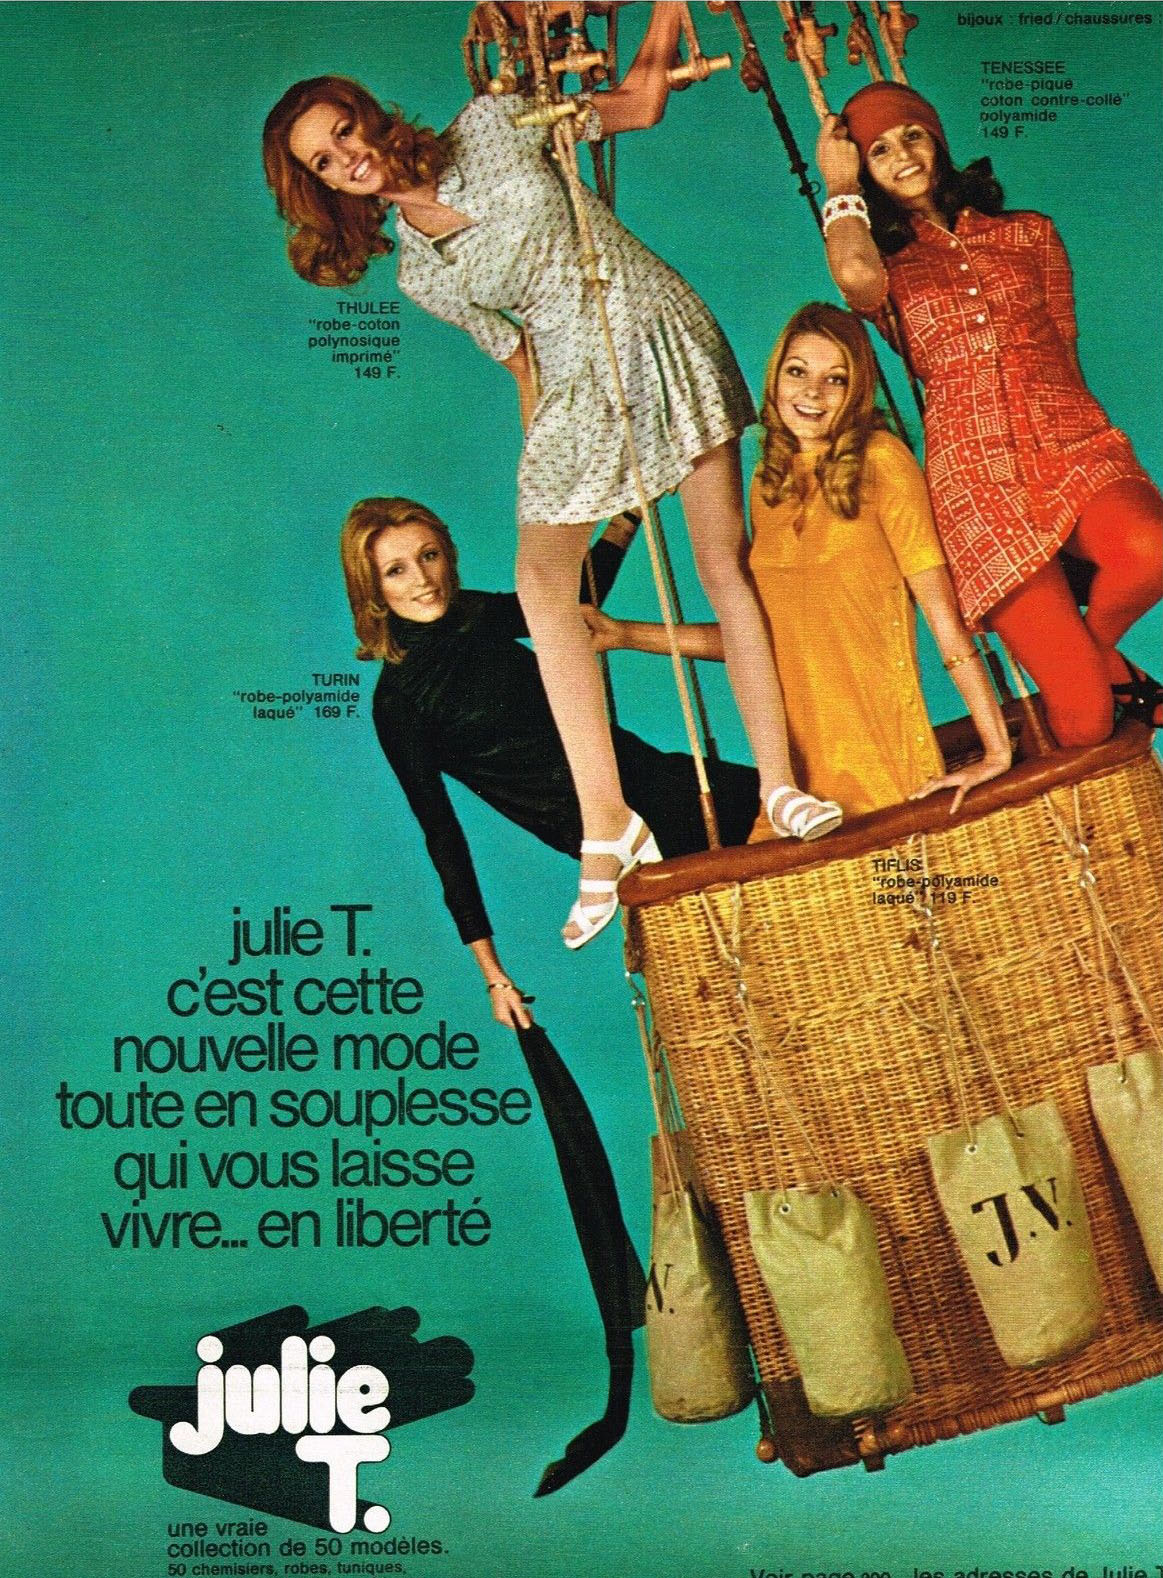 Publicite-Advertising-1970-Pret-a-porter-Vetements-Robe-Julie-